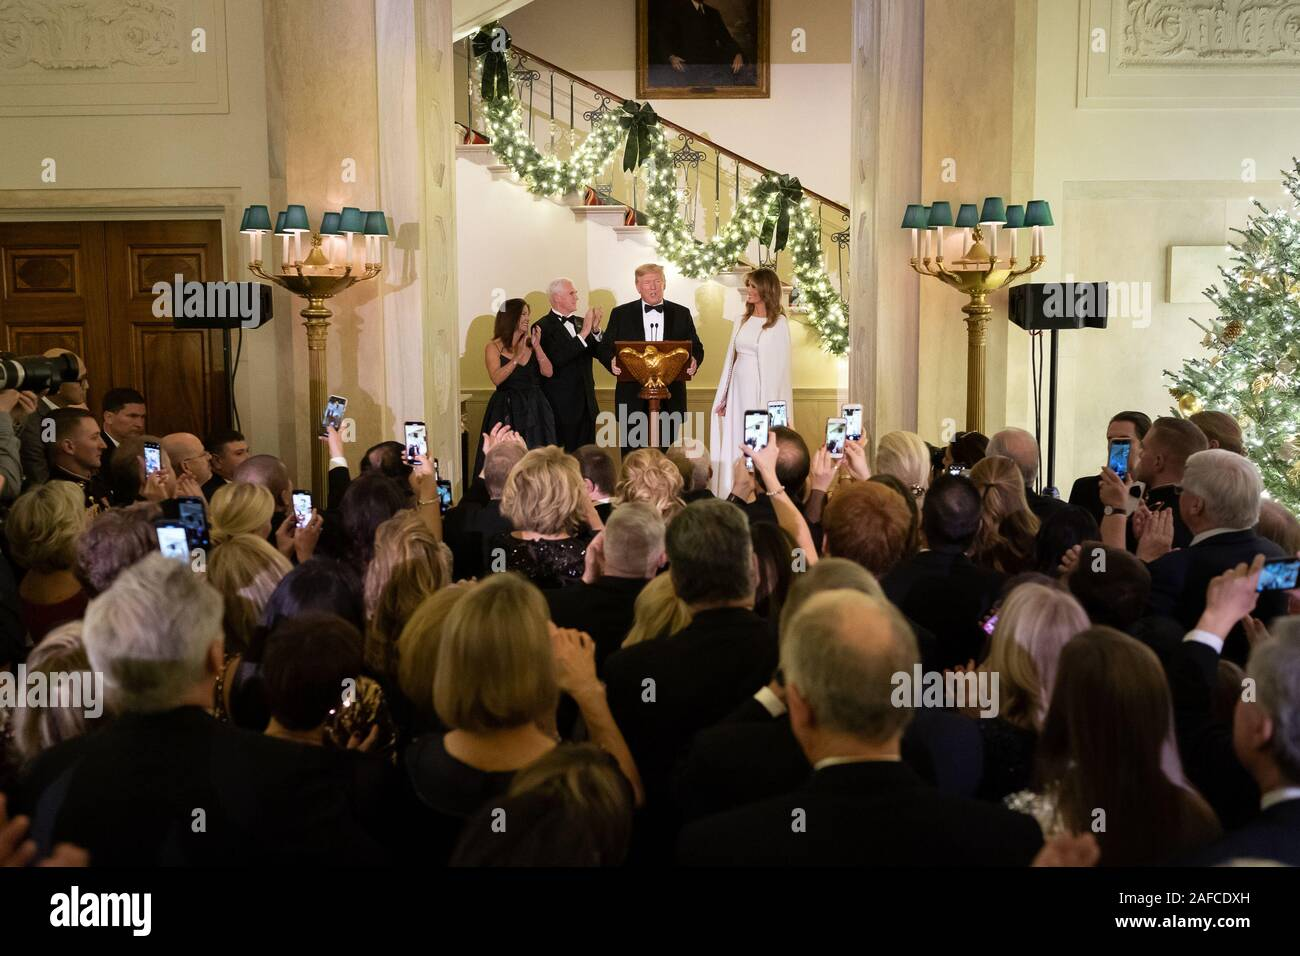 Washington, United States Of America. 12th Dec, 2019. President Donald J. Trump, joined by First Lady Melania Trump, Vice President Mike Pence and Second Lady Karen Pence, delivers remarks during the Congressional Ball Thursday, Dec. 12, 2019, in the Grand Foyer of the White House People: President Donald J. Trump, joined by First Lady Melania Trump Credit: Storms Media Group/Alamy Live News Stock Photo